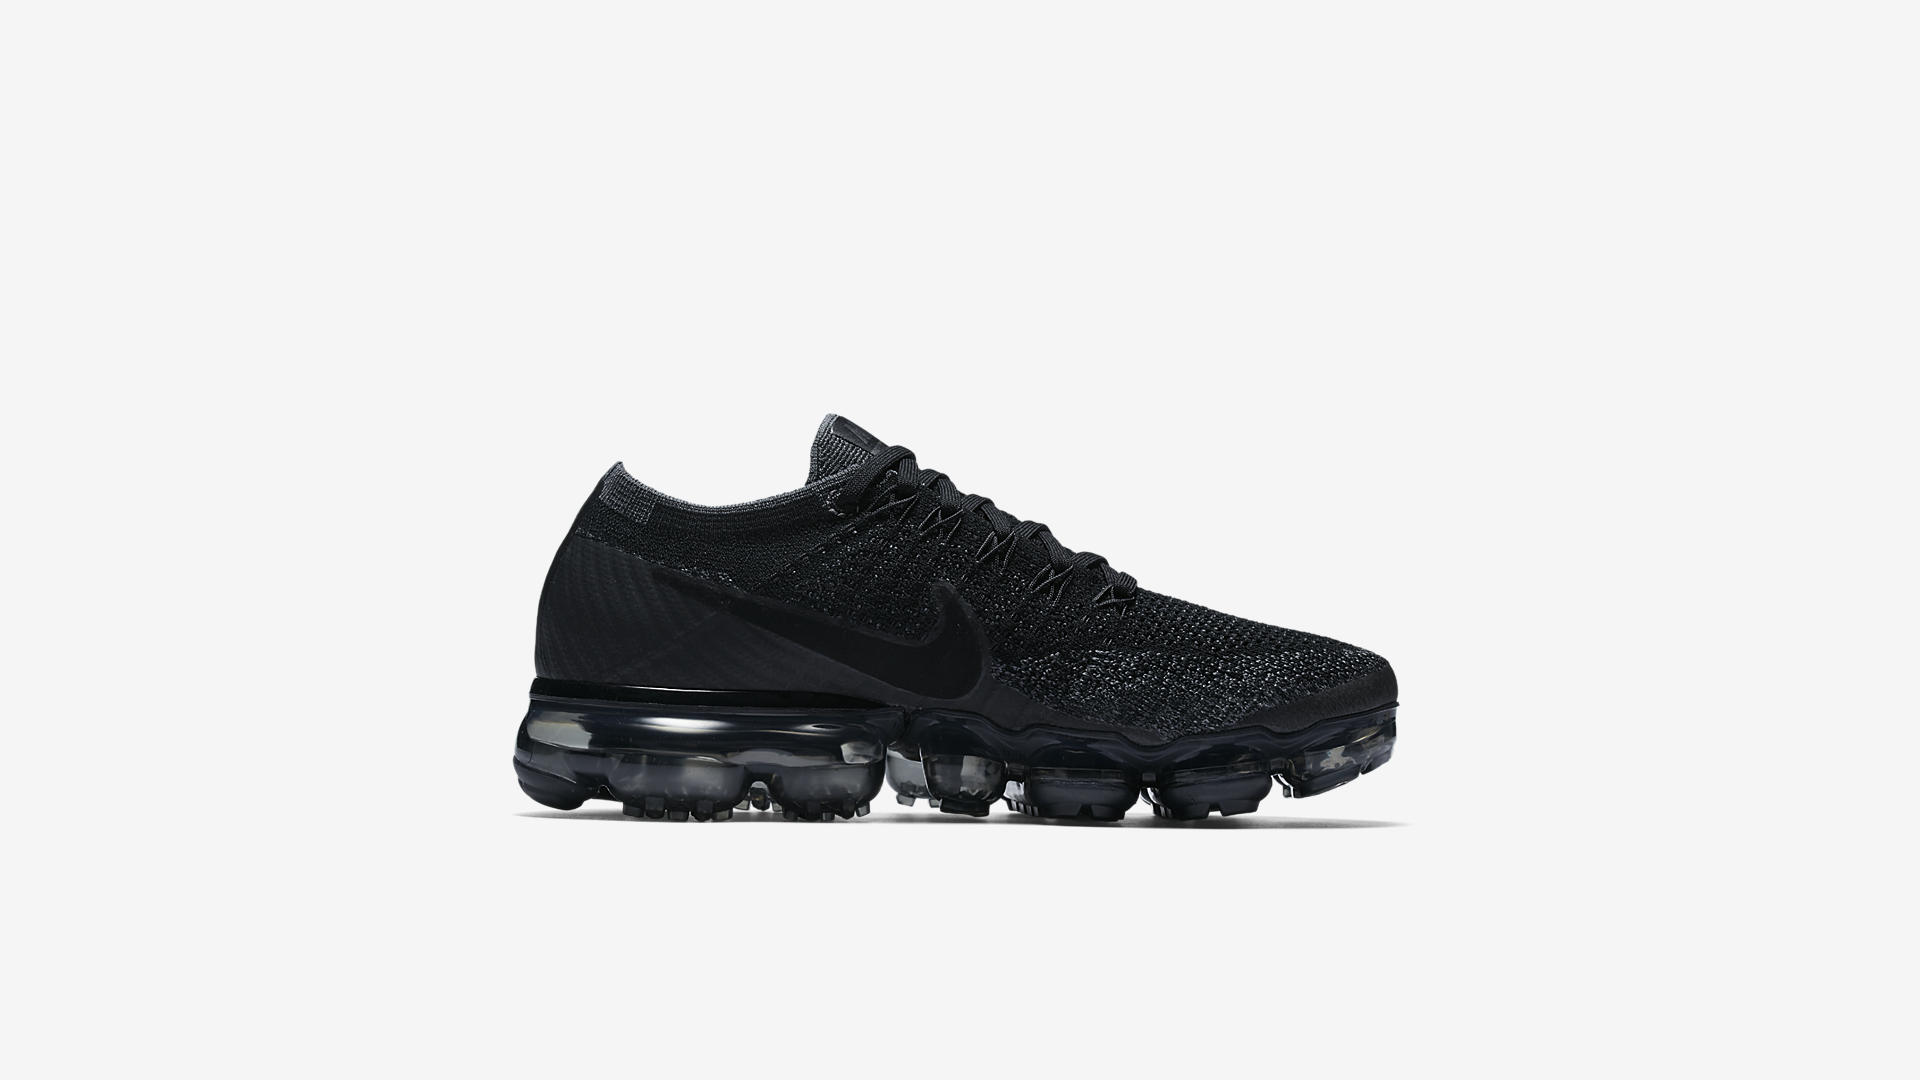 Nike Air Vapormax Triple Black 849558 007 3